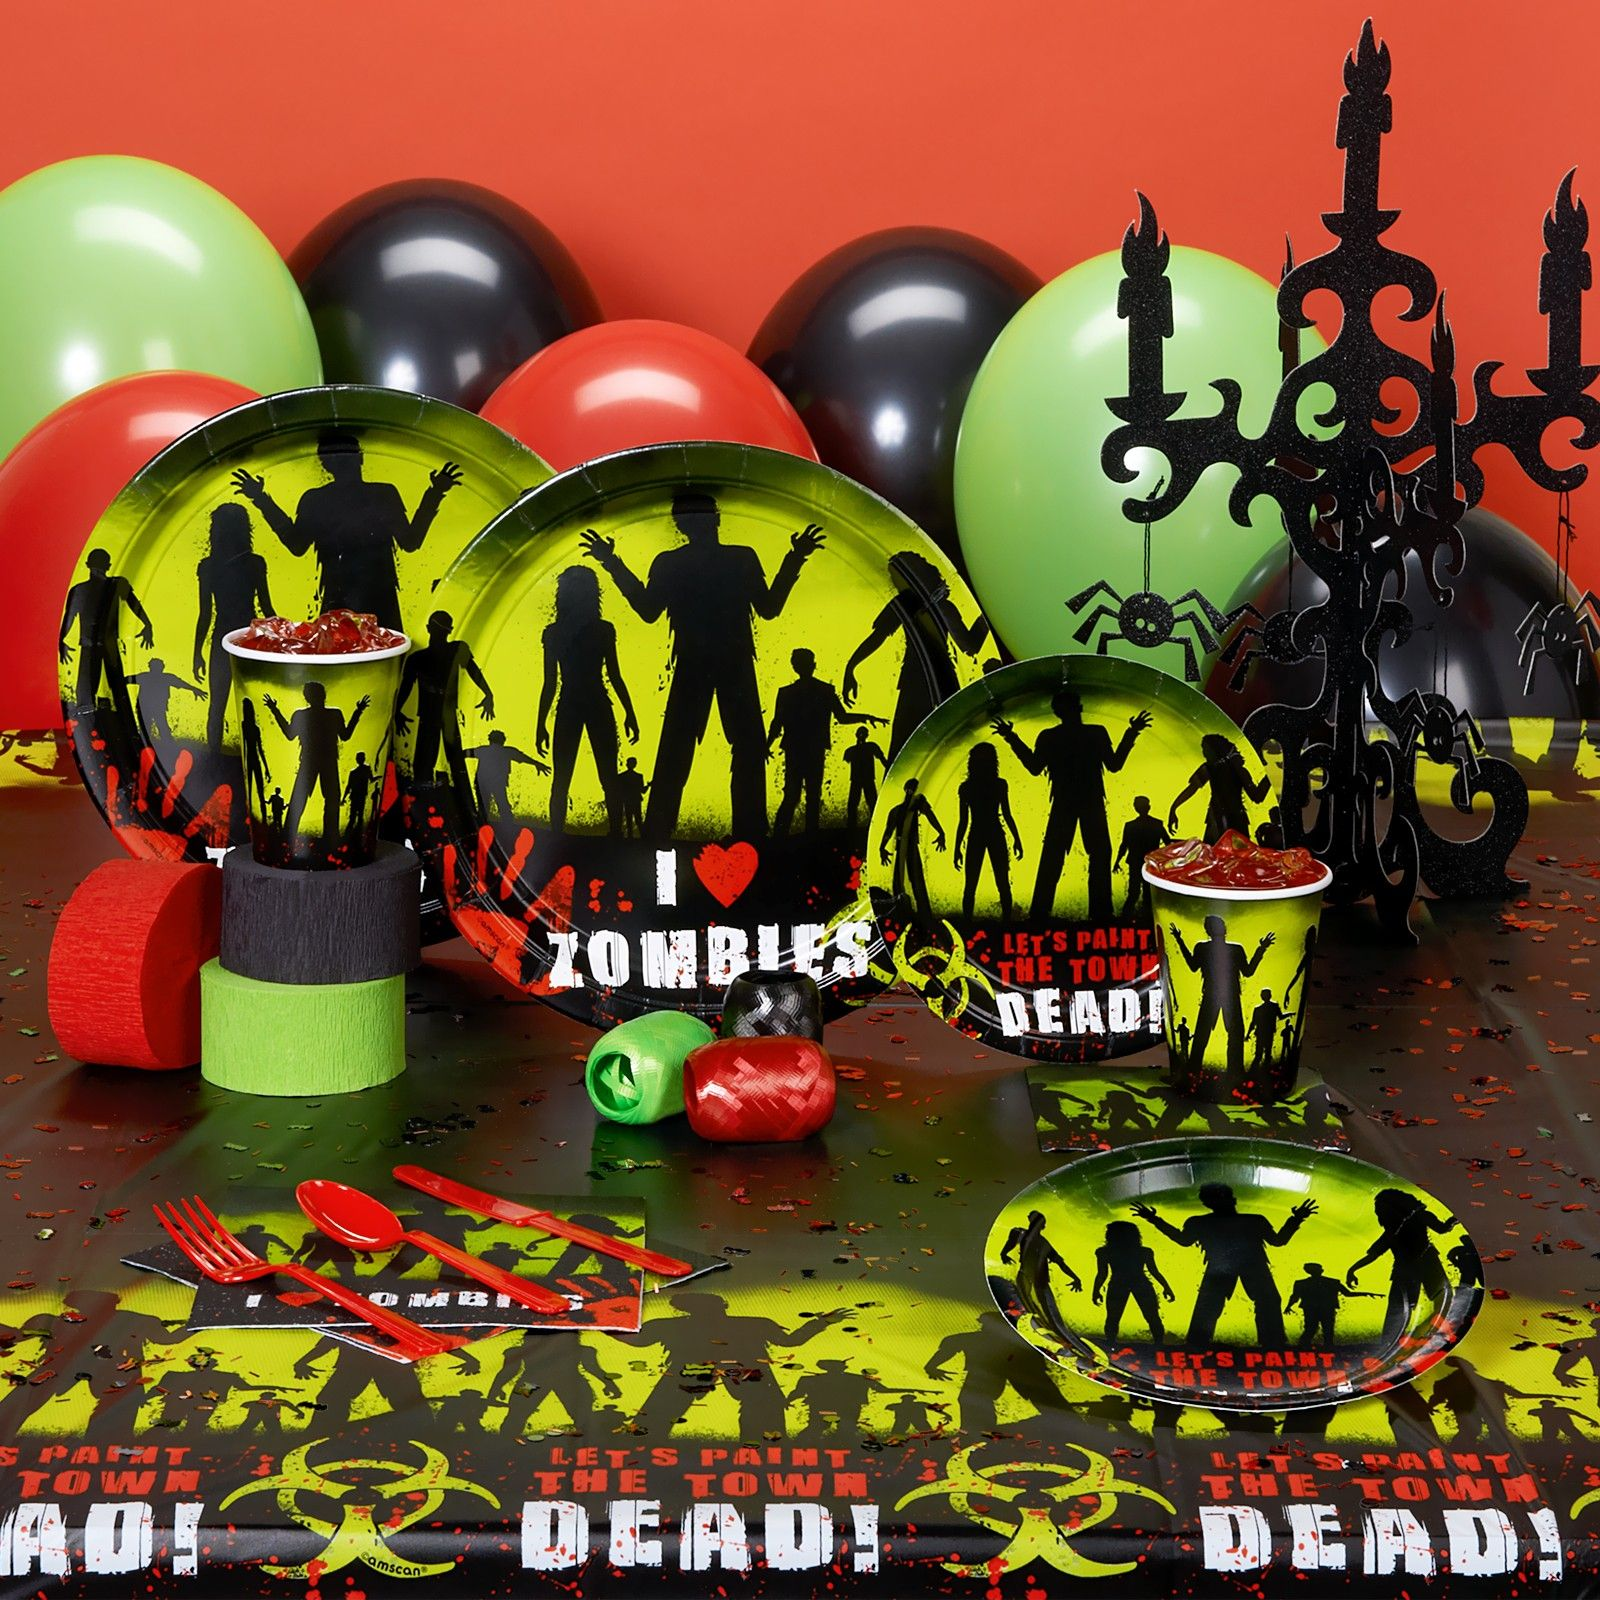 1000+ images about Zombie Party on Pinterest | Brain cupcakes ...